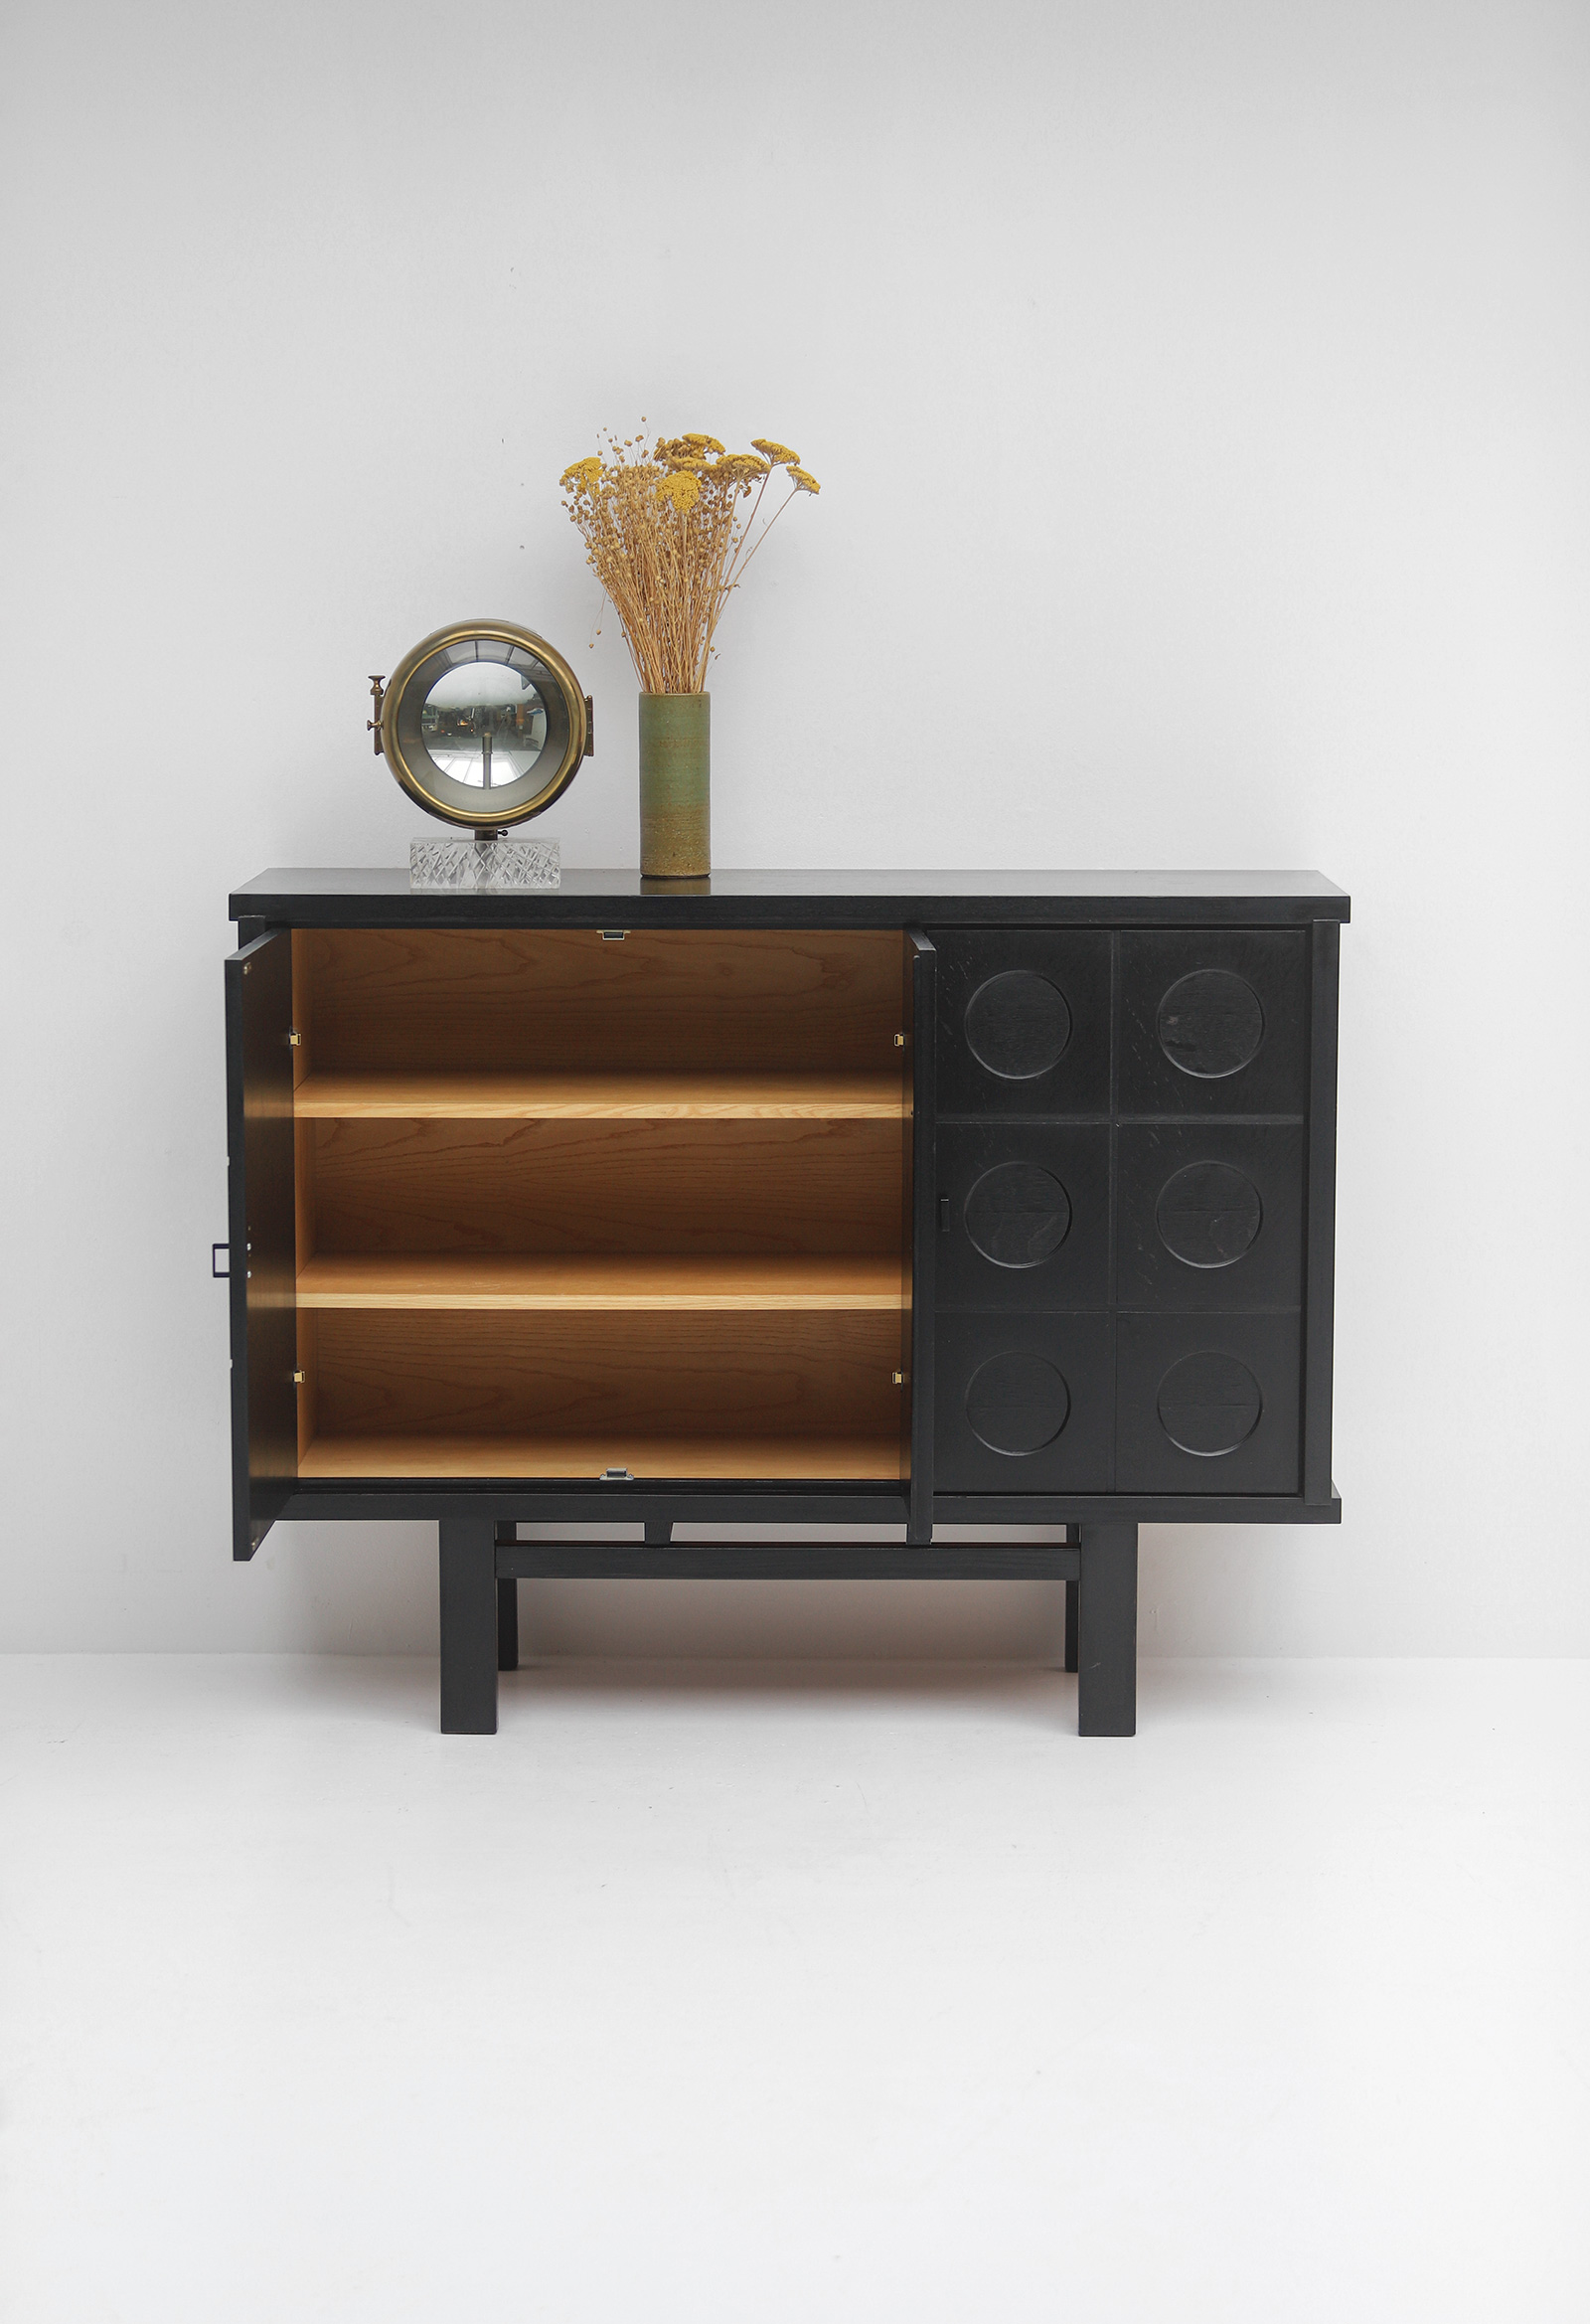 Decorative Black Cabinet with Patterned doors image 4